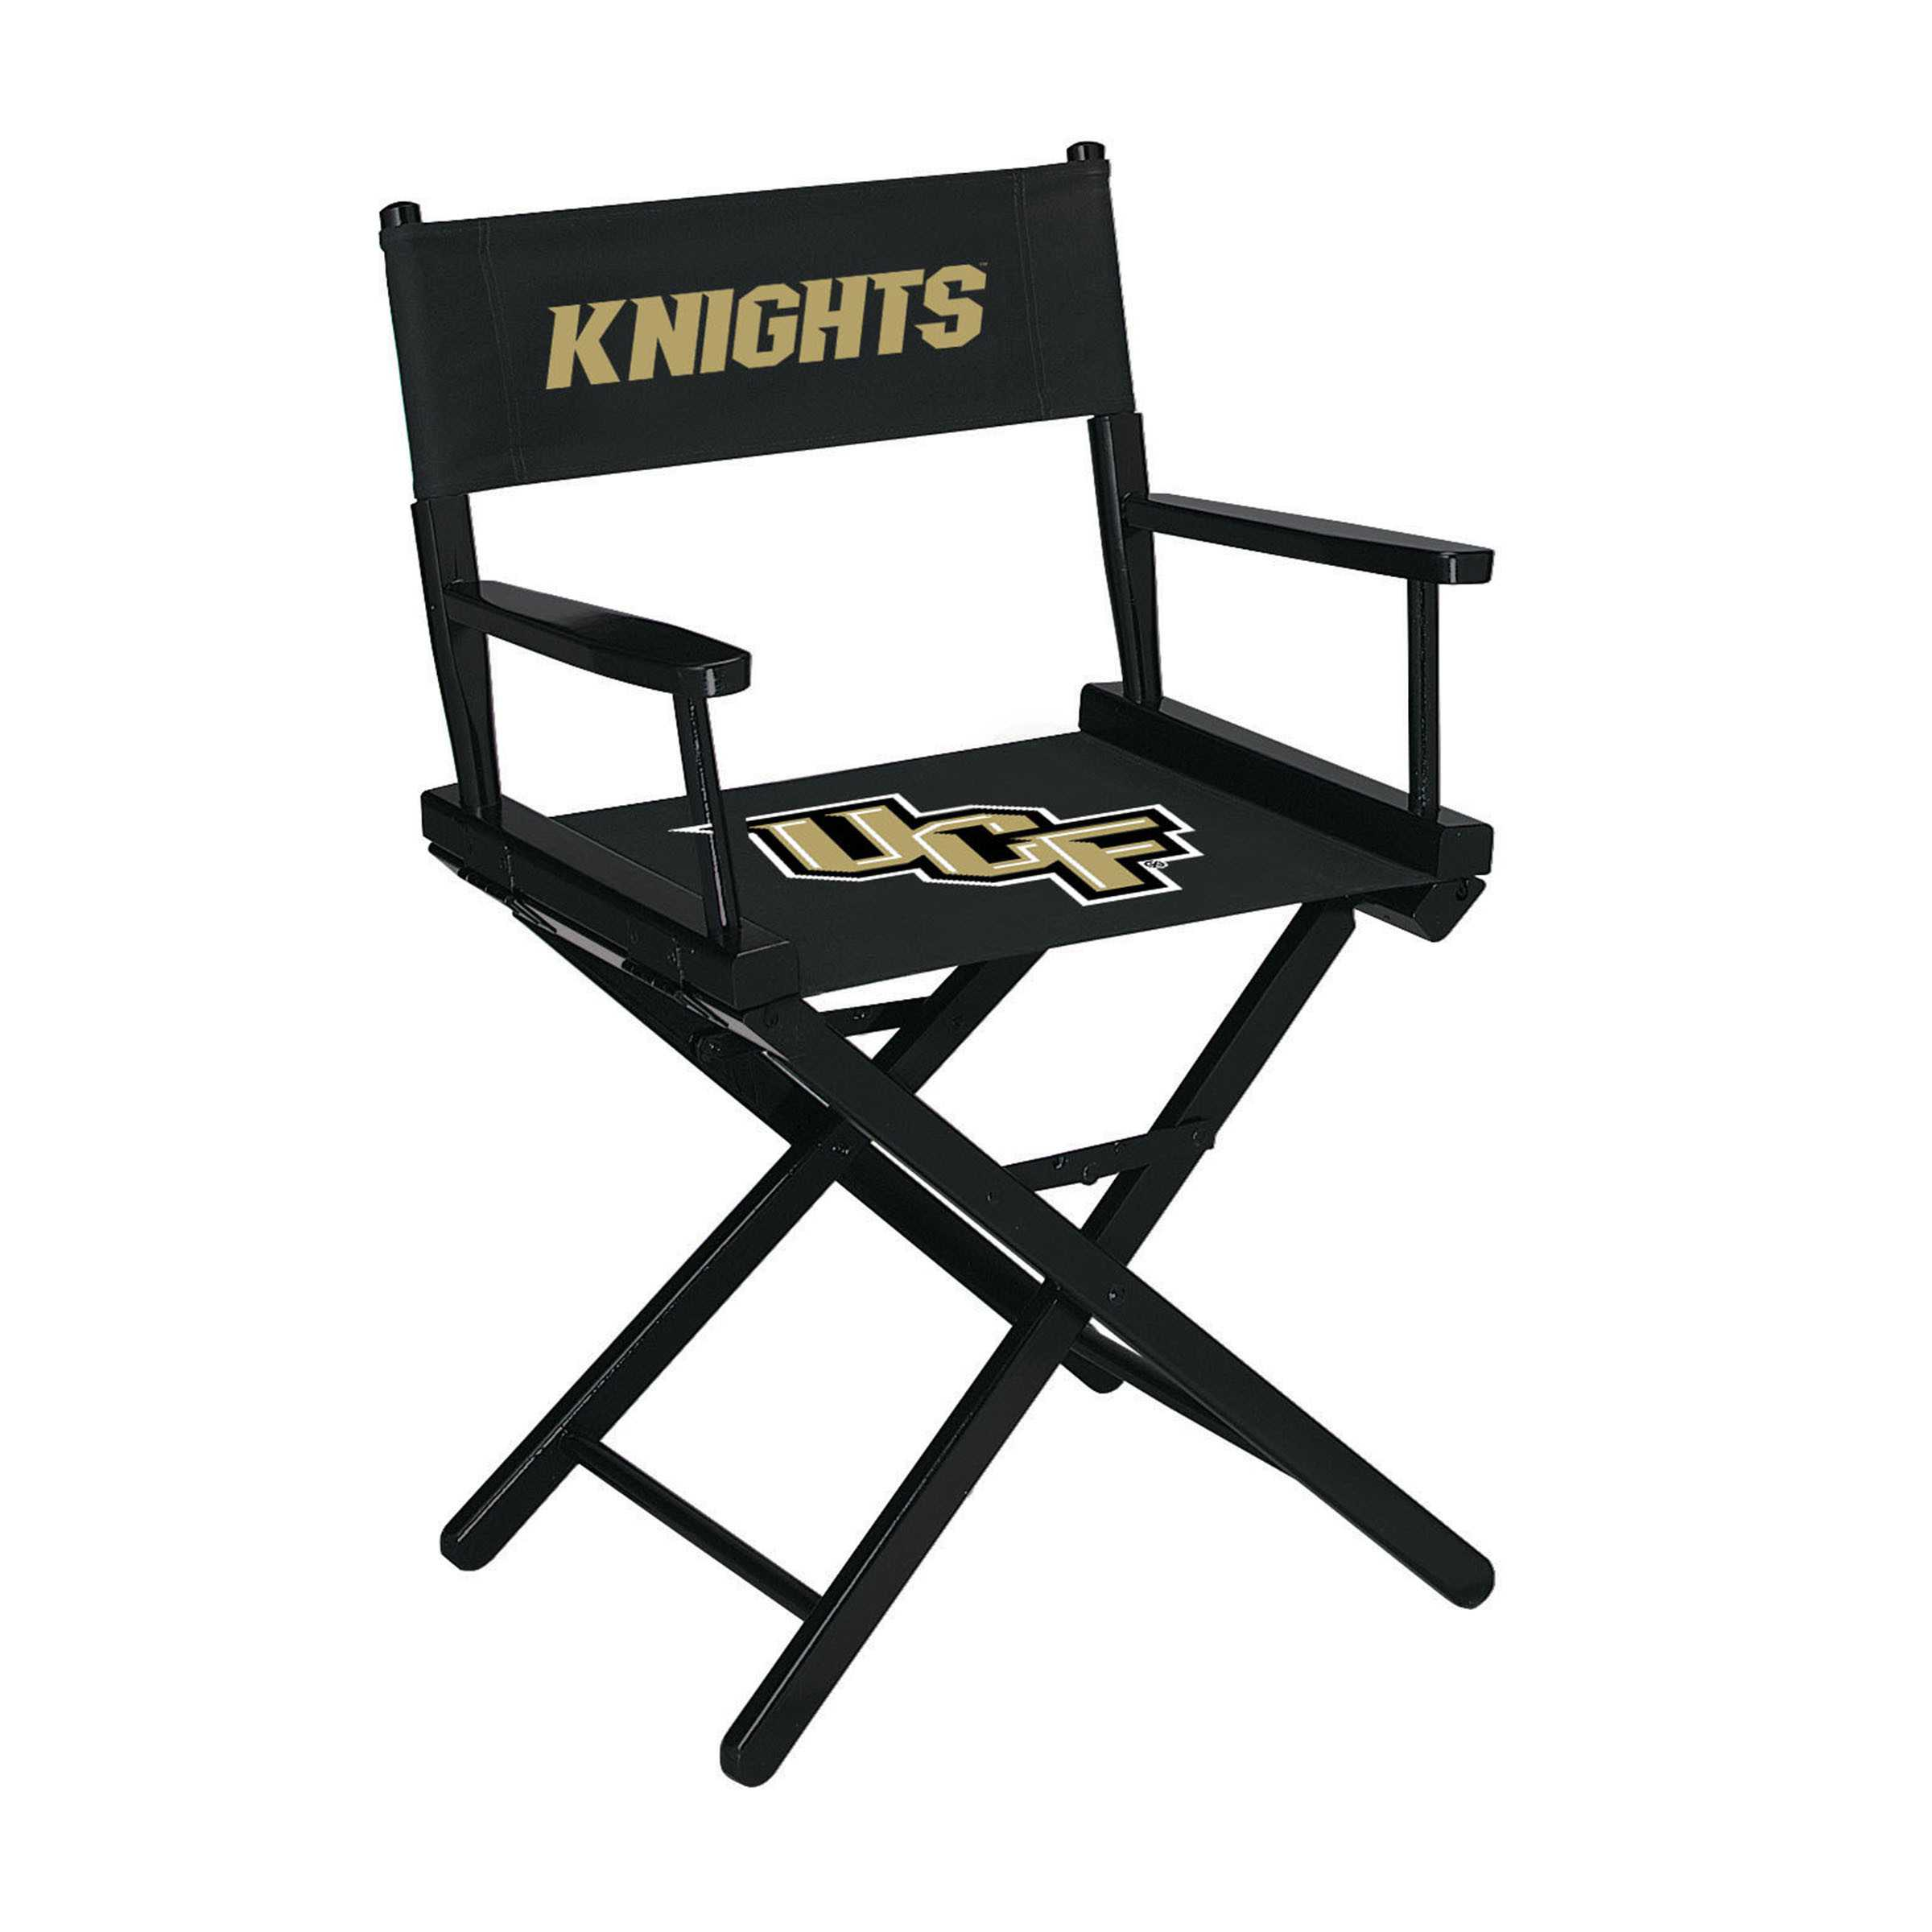 CENTRAL FLORIDA UNIVERSITY DIRECTORS CHAIR-TABLE HEIGHT